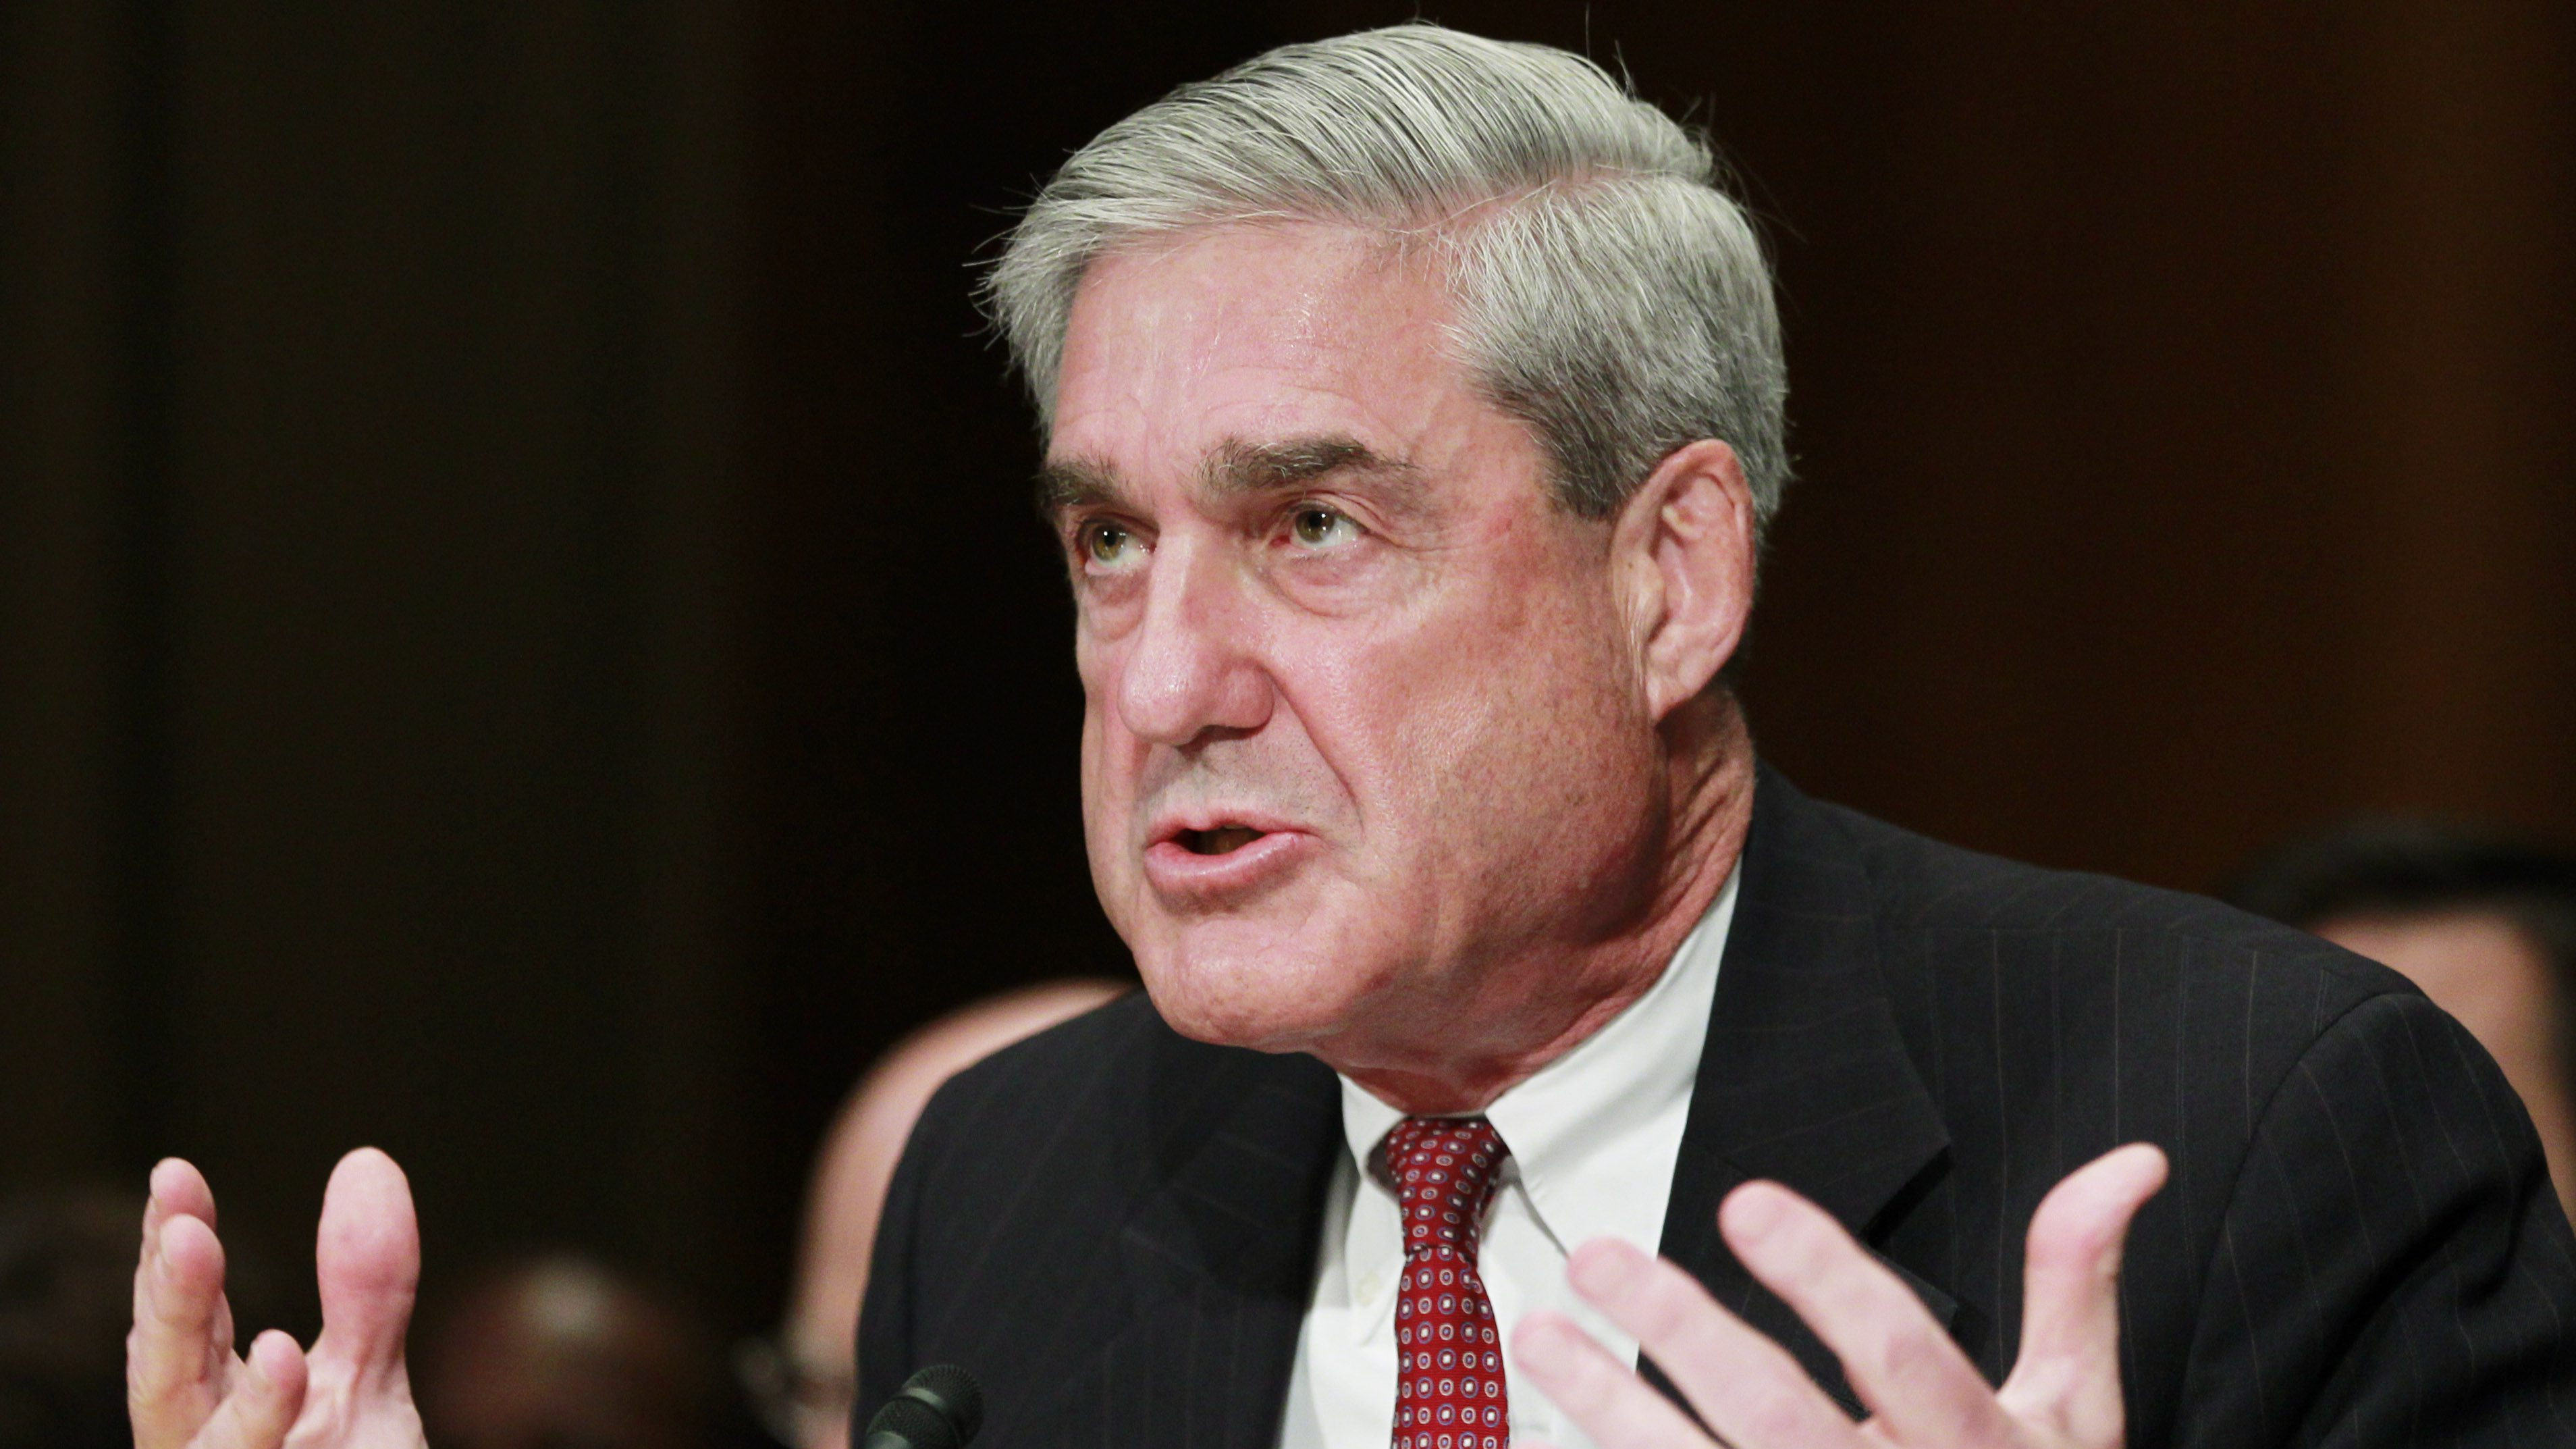 """FBI Director Robert Mueller testifies on Capitol Hill in Washington, Wednesday, July 28, 2010, before the Senate Judiciary Committee hearing on the """"Oversight of the  Federal Bureau of Investigation"""" .   (AP Photo/Manuel Balce Ceneta)"""